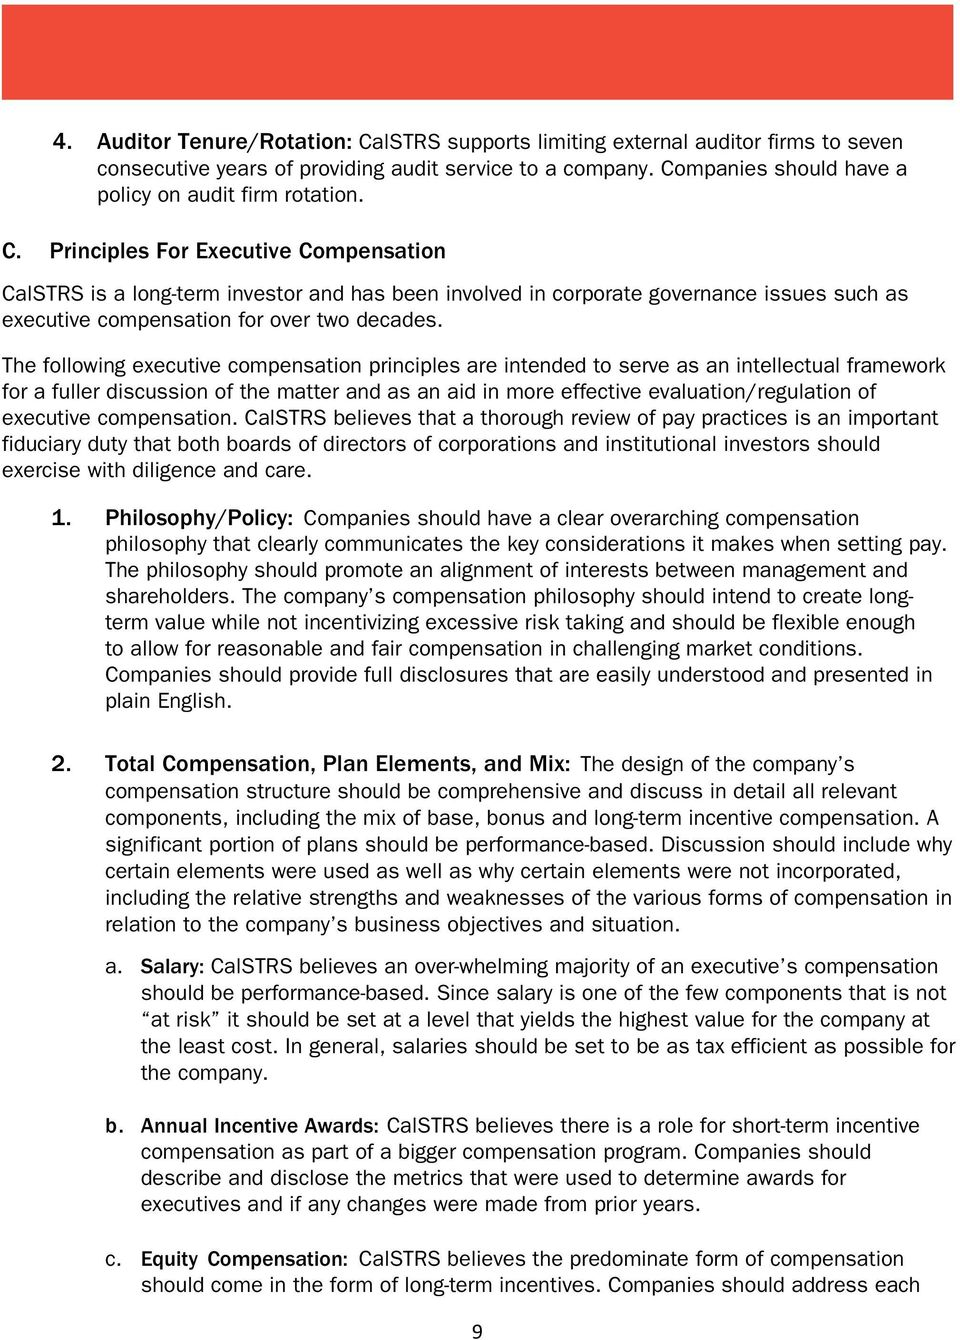 The following executive compensation principles are intended to serve as an intellectual framework for a fuller discussion of the matter and as an aid in more effective evaluation/regulation of